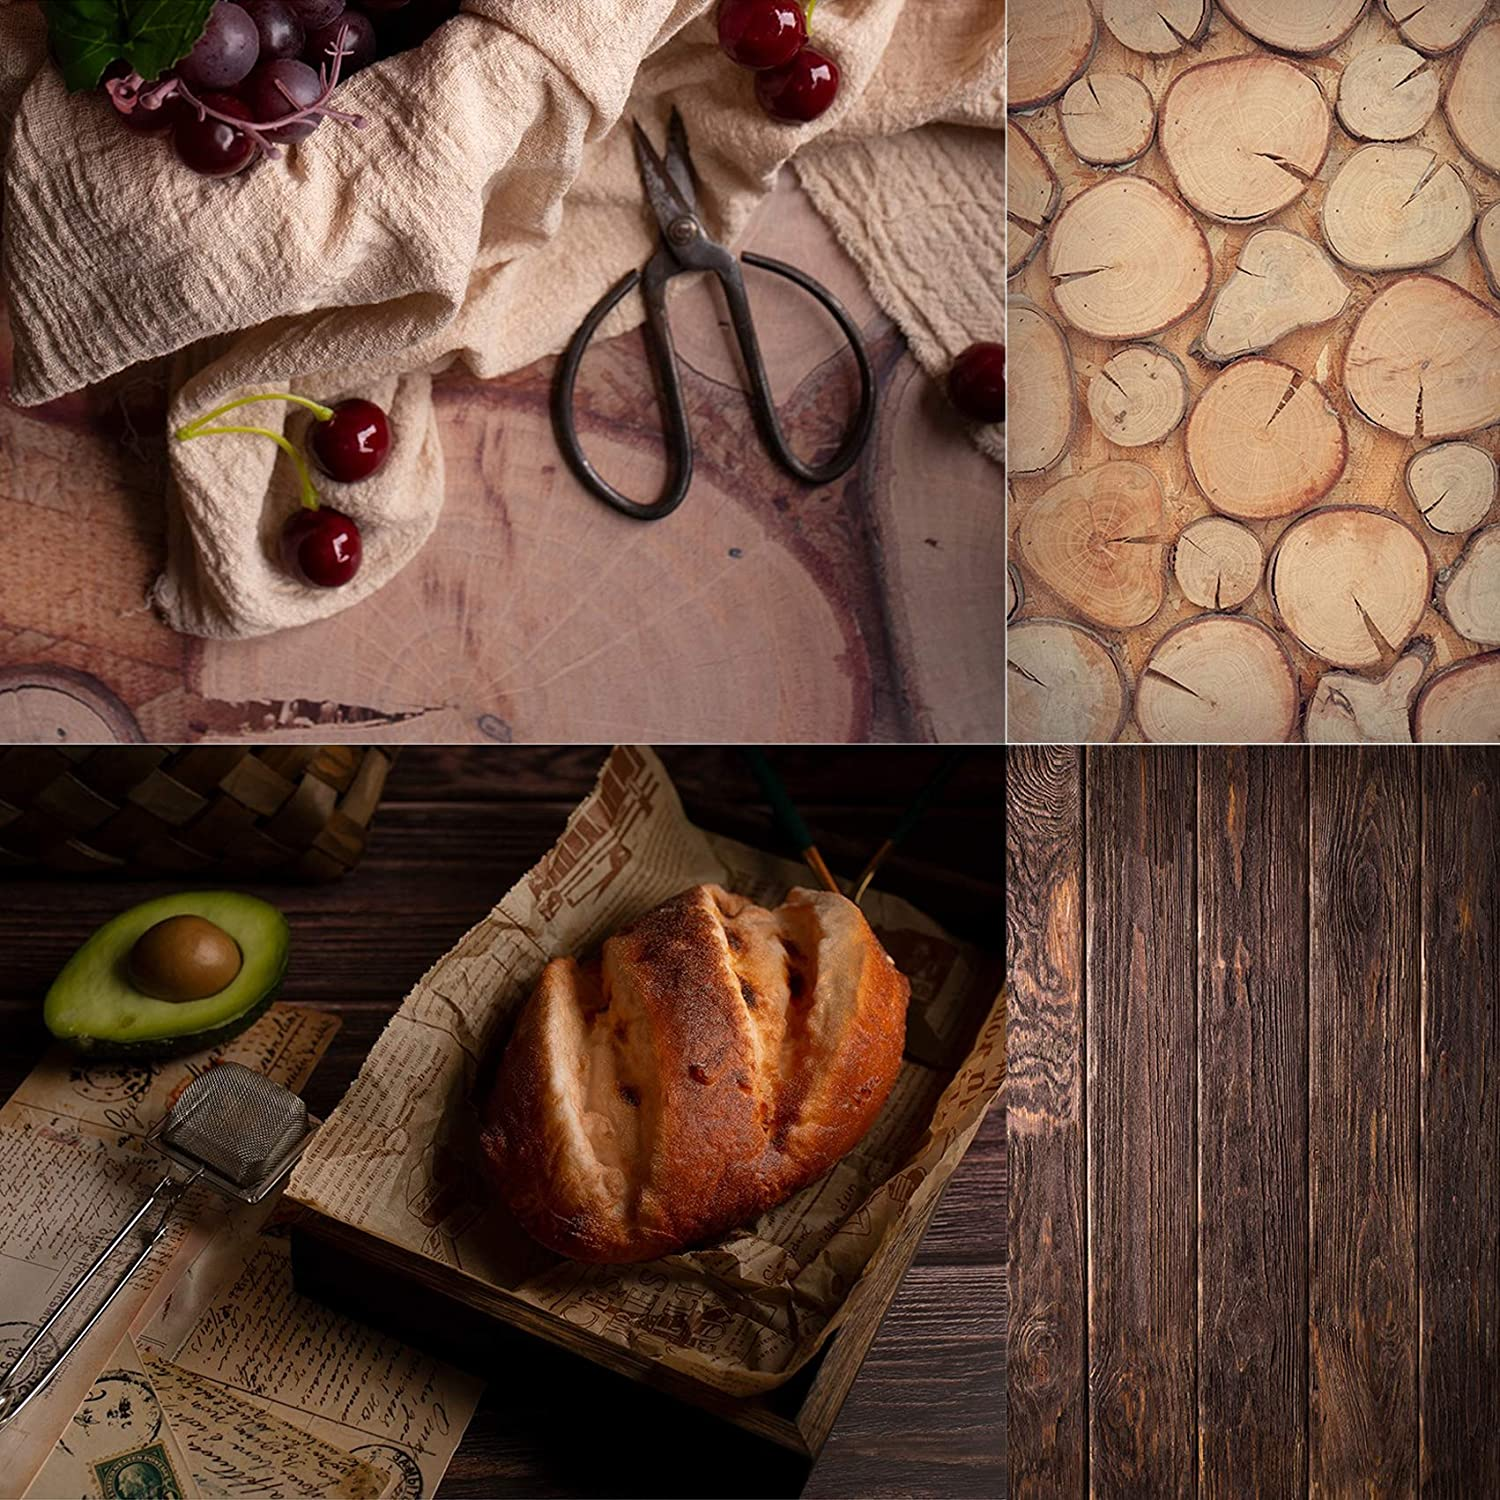 Selens 2x3ft/60x90cm Round Wood Photography Backdrop Paper 2 in 1Flat Lay Backdrops Food Photography Background Tabletop Backdrop Props for Jewelry Makeup Small Product Desktop Backdrop